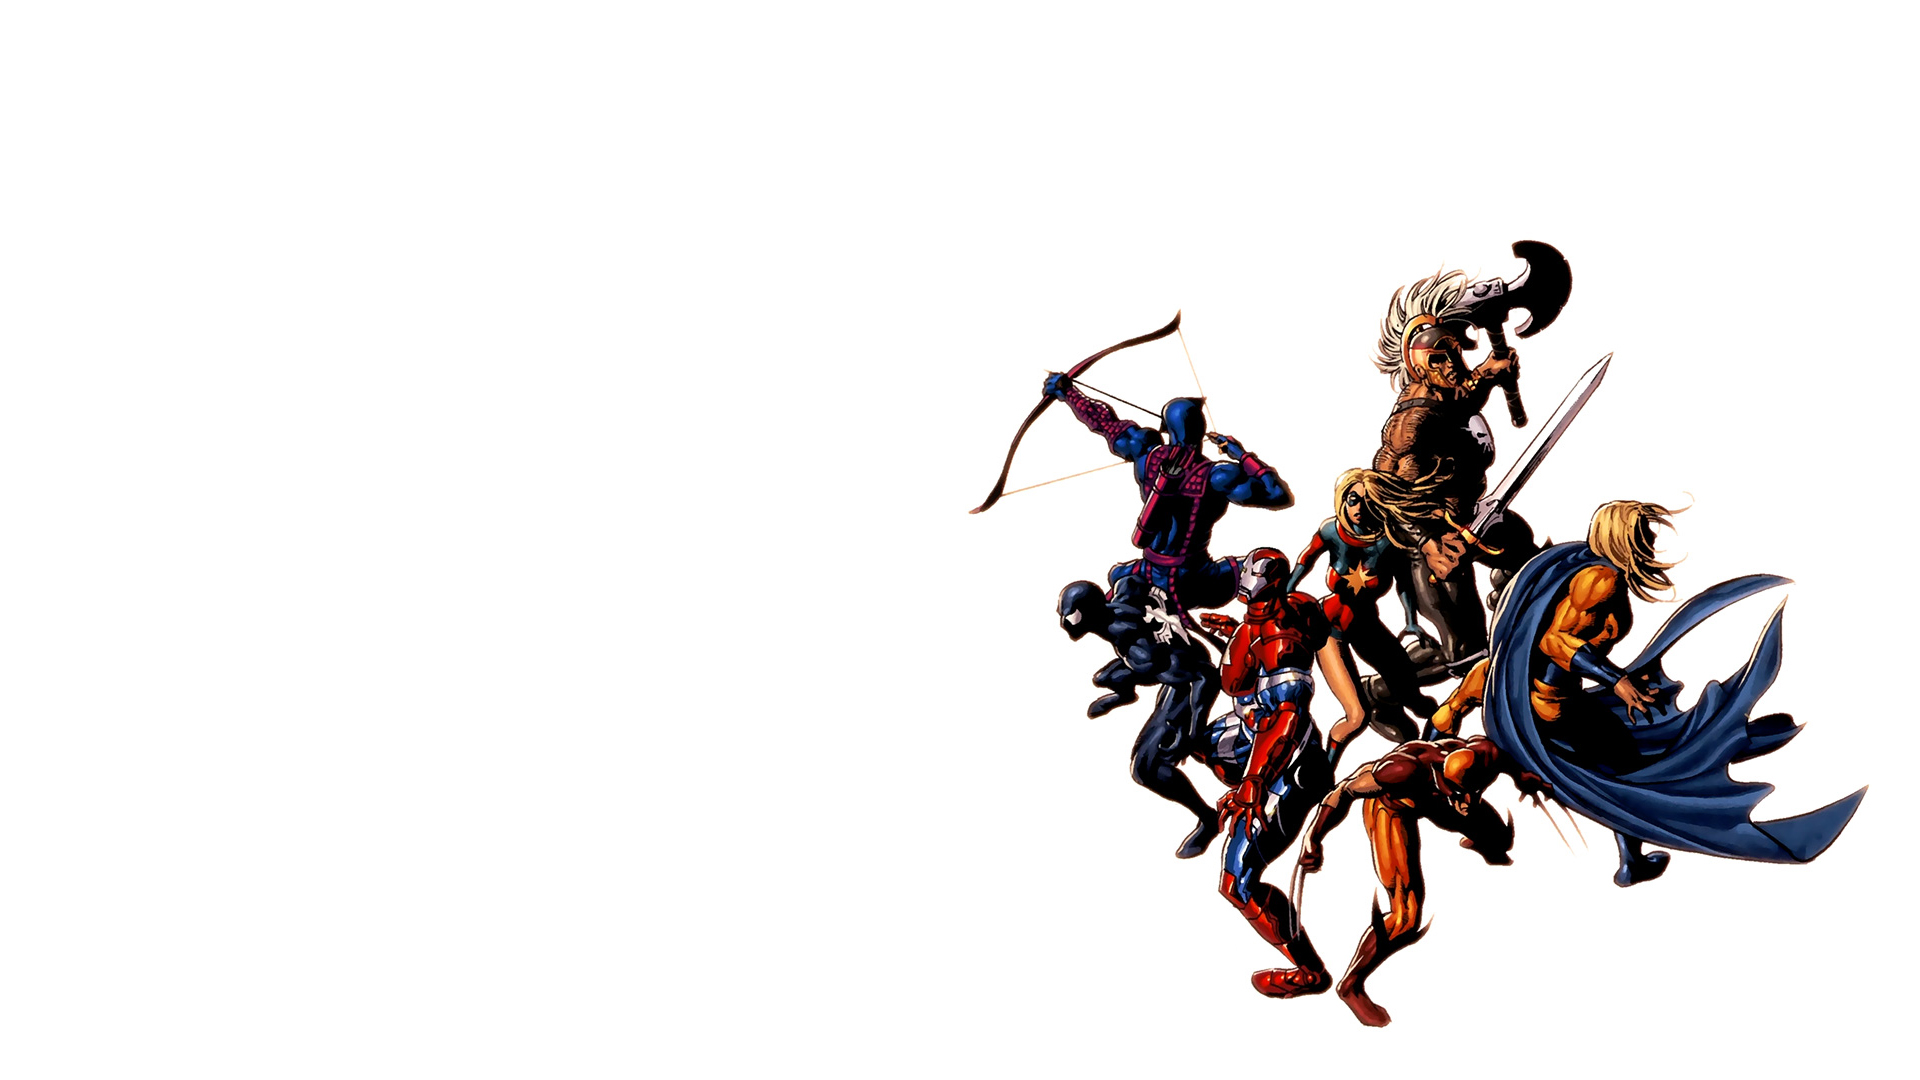 Marvel Comics Wallpaper 1920x1080 Marvel Comics Dark Avengers 1920x1080